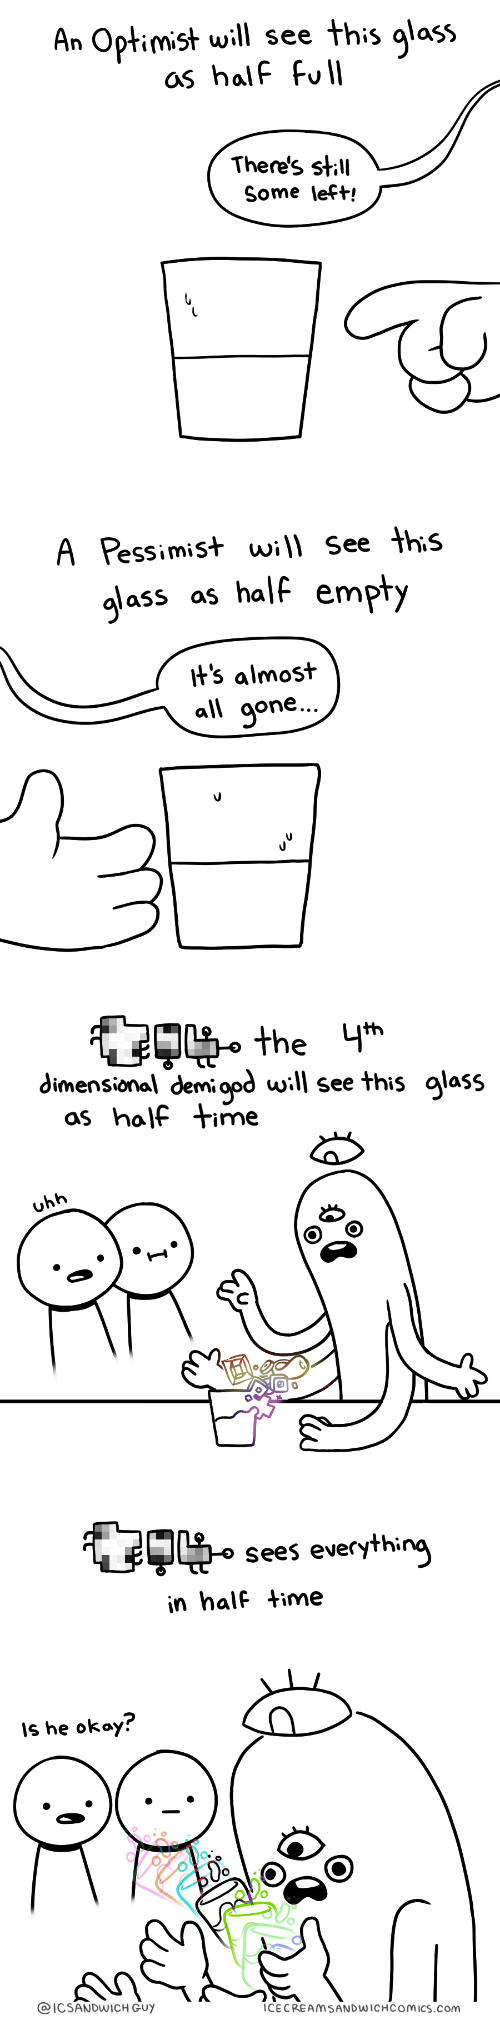 Okay, Time, and Com: An Optimist will see this qlass  as half full  There's stll  Some left!   A Pessimist will see this  gjass as half empty  It's almost  all aone..   OFRt,.the glass  dimensional demi opd will see this qlass  as half time  uhh   Sees everythin  in half time  Is he okay?  о.  ICSANDWICH GUY  ICECREAMSANDWICHCOMICS.Com